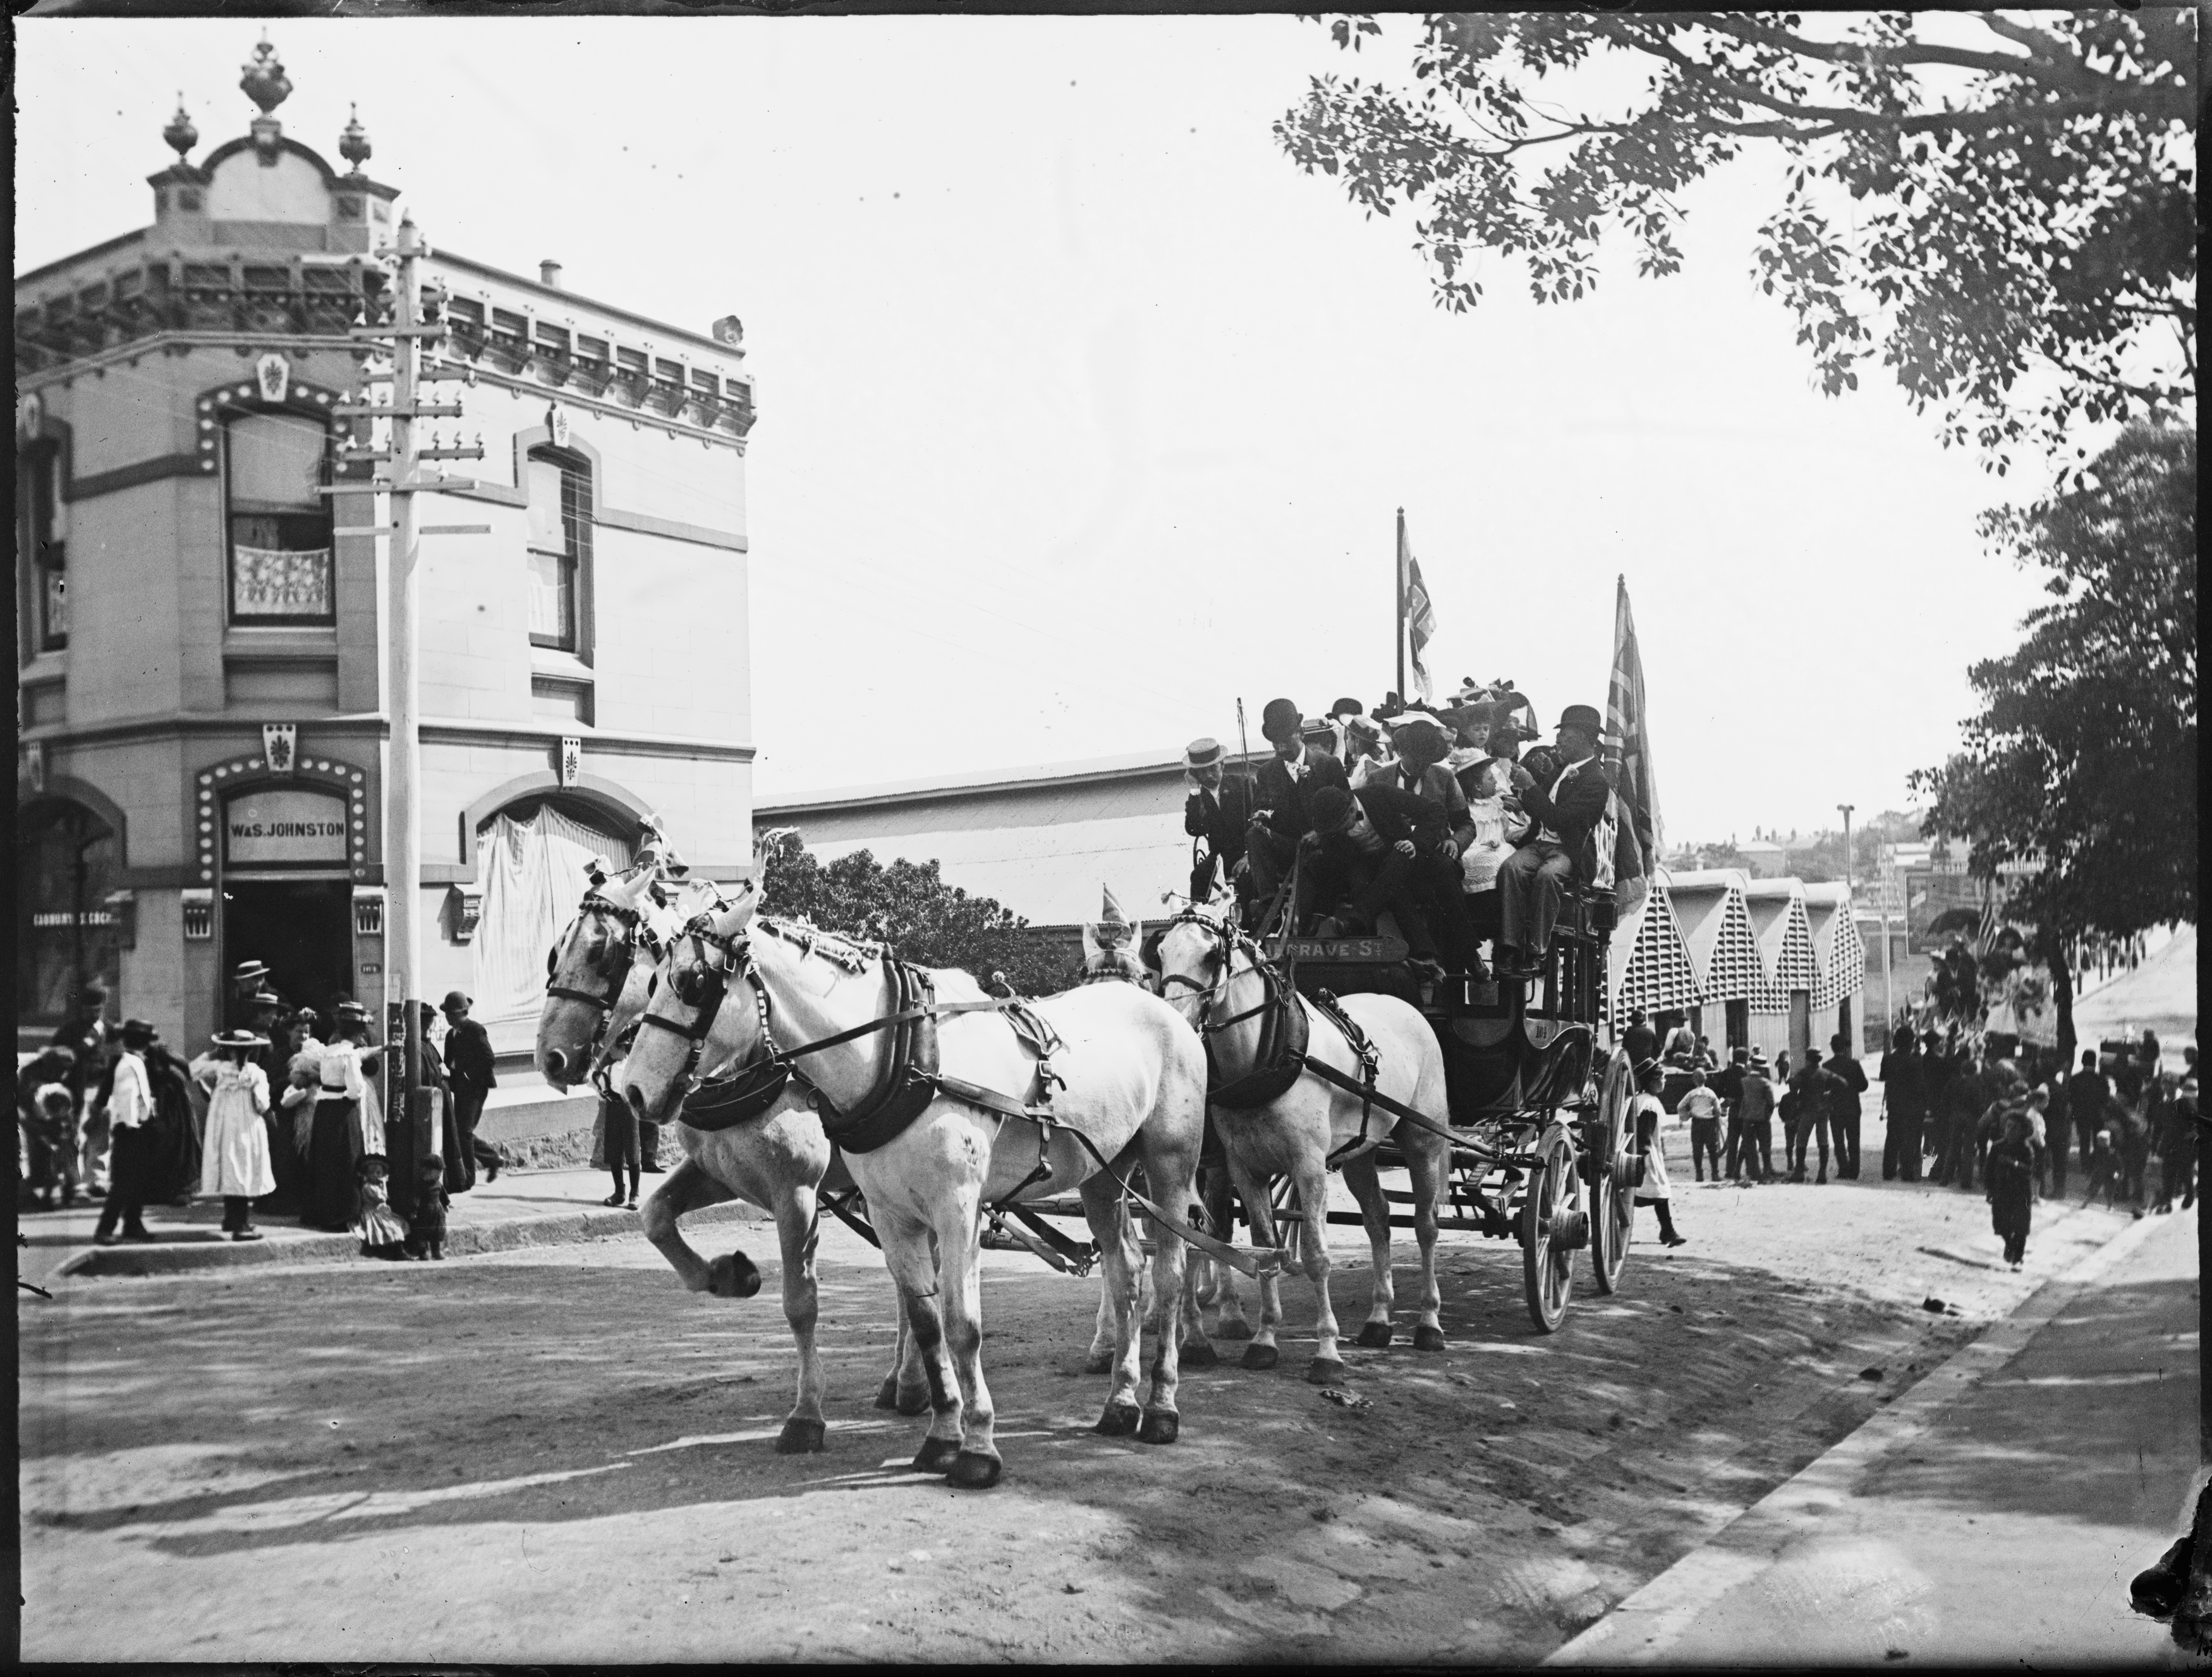 Box 03: Glass negatives of the Sydney and Blue Mountains regions, ca 1890-1910